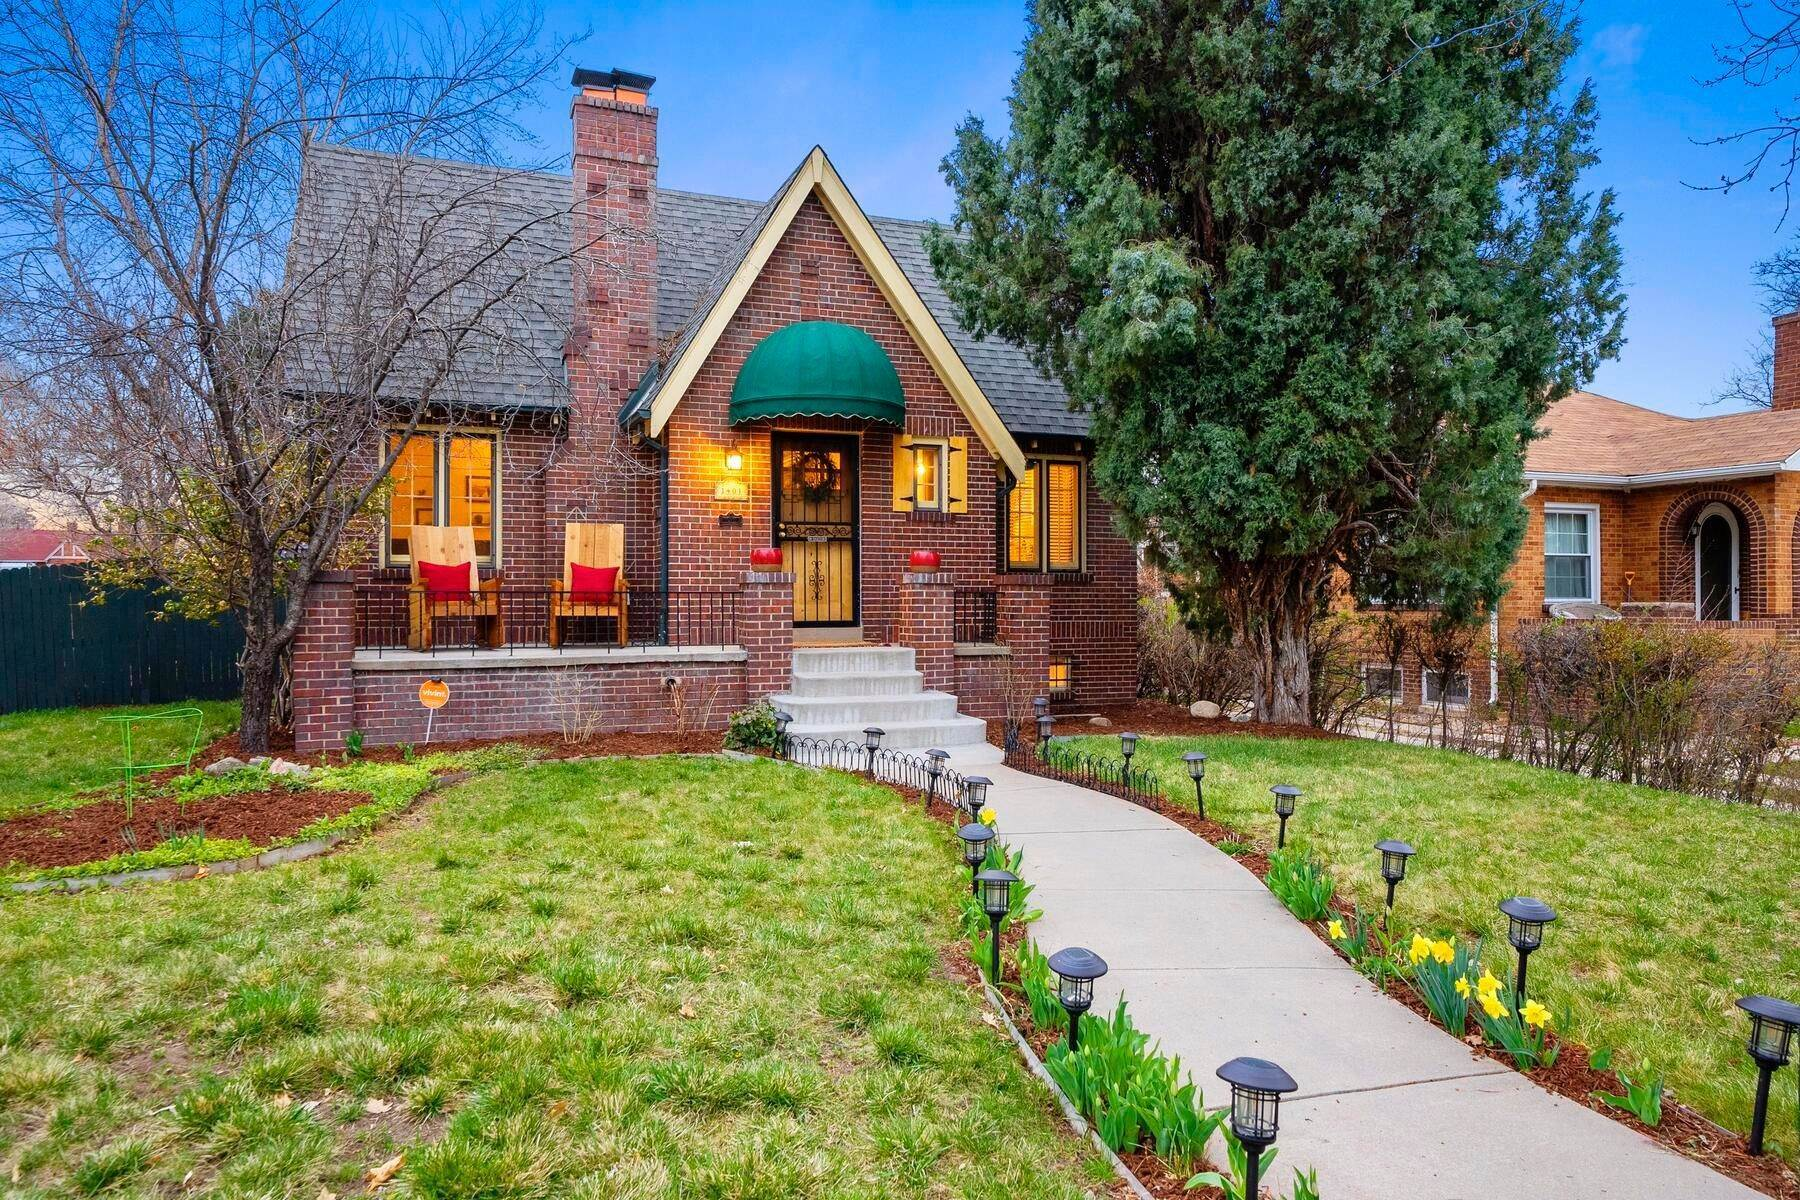 Single Family Homes for Sale at Charming Brick Home Right in the Heart of Mayfair! 1401 Dahlia Street Denver, Colorado 80220 United States